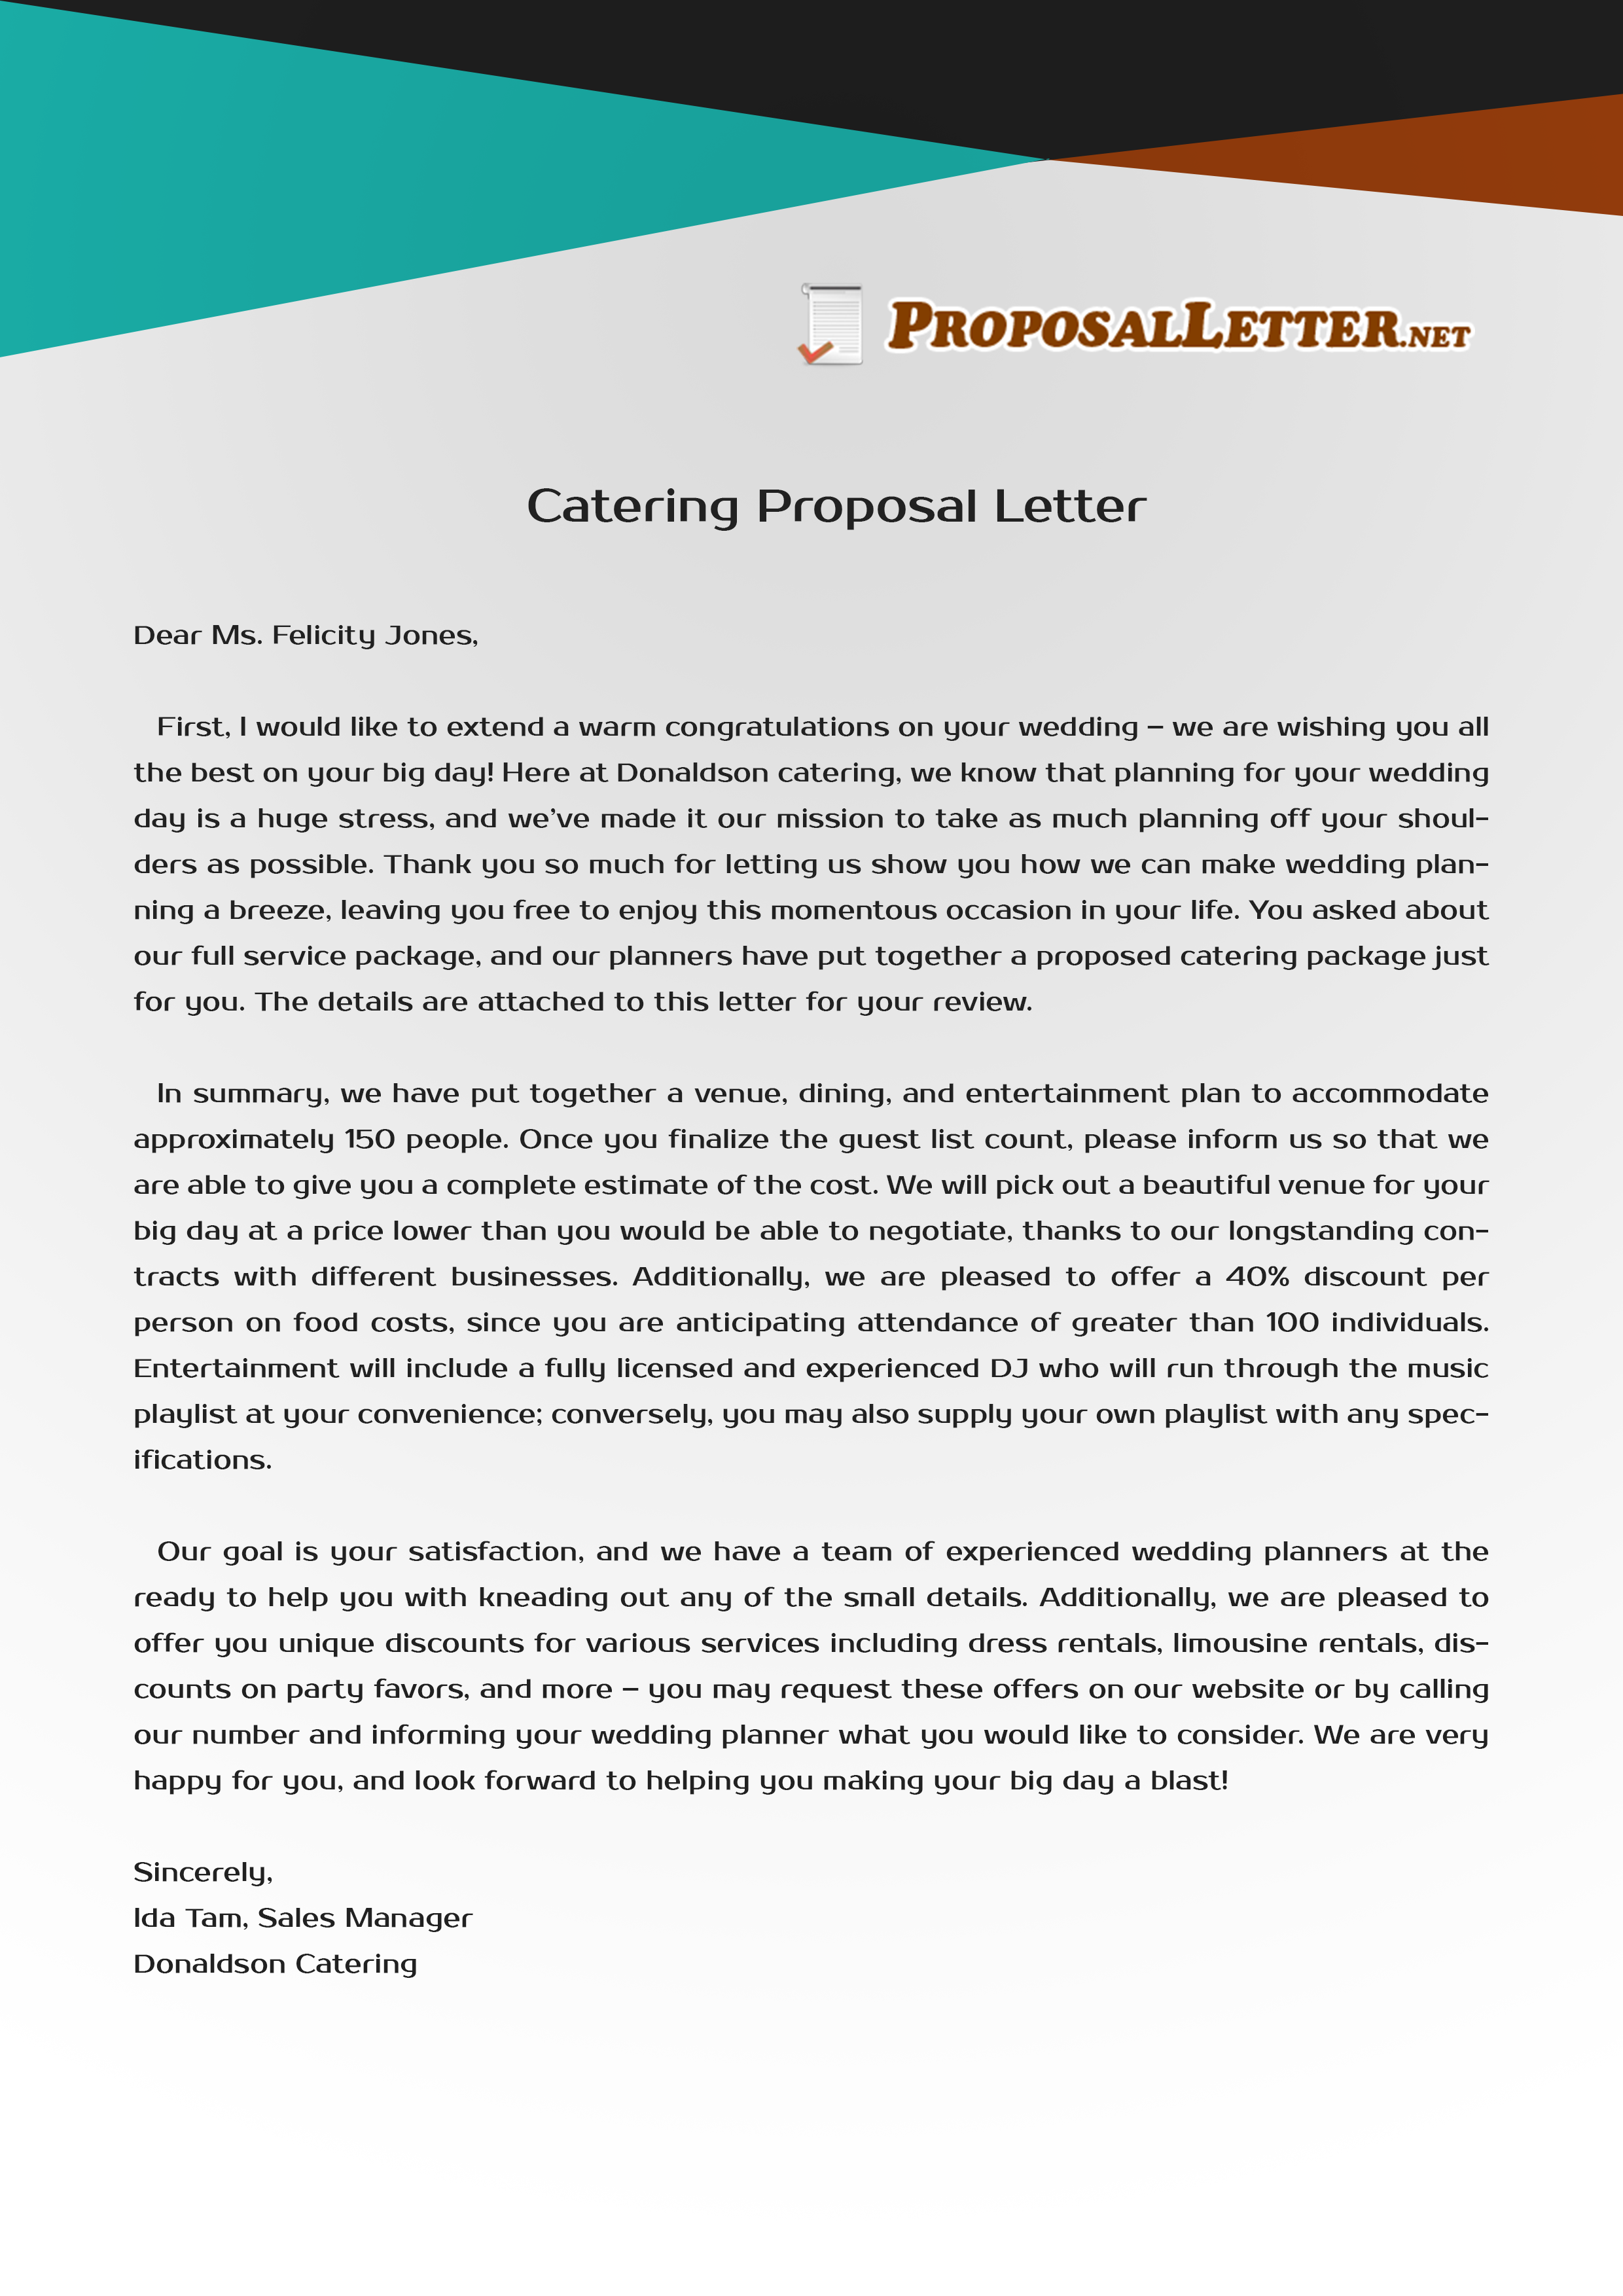 need help to write catering letter proposal  see these samples and get a professional helping